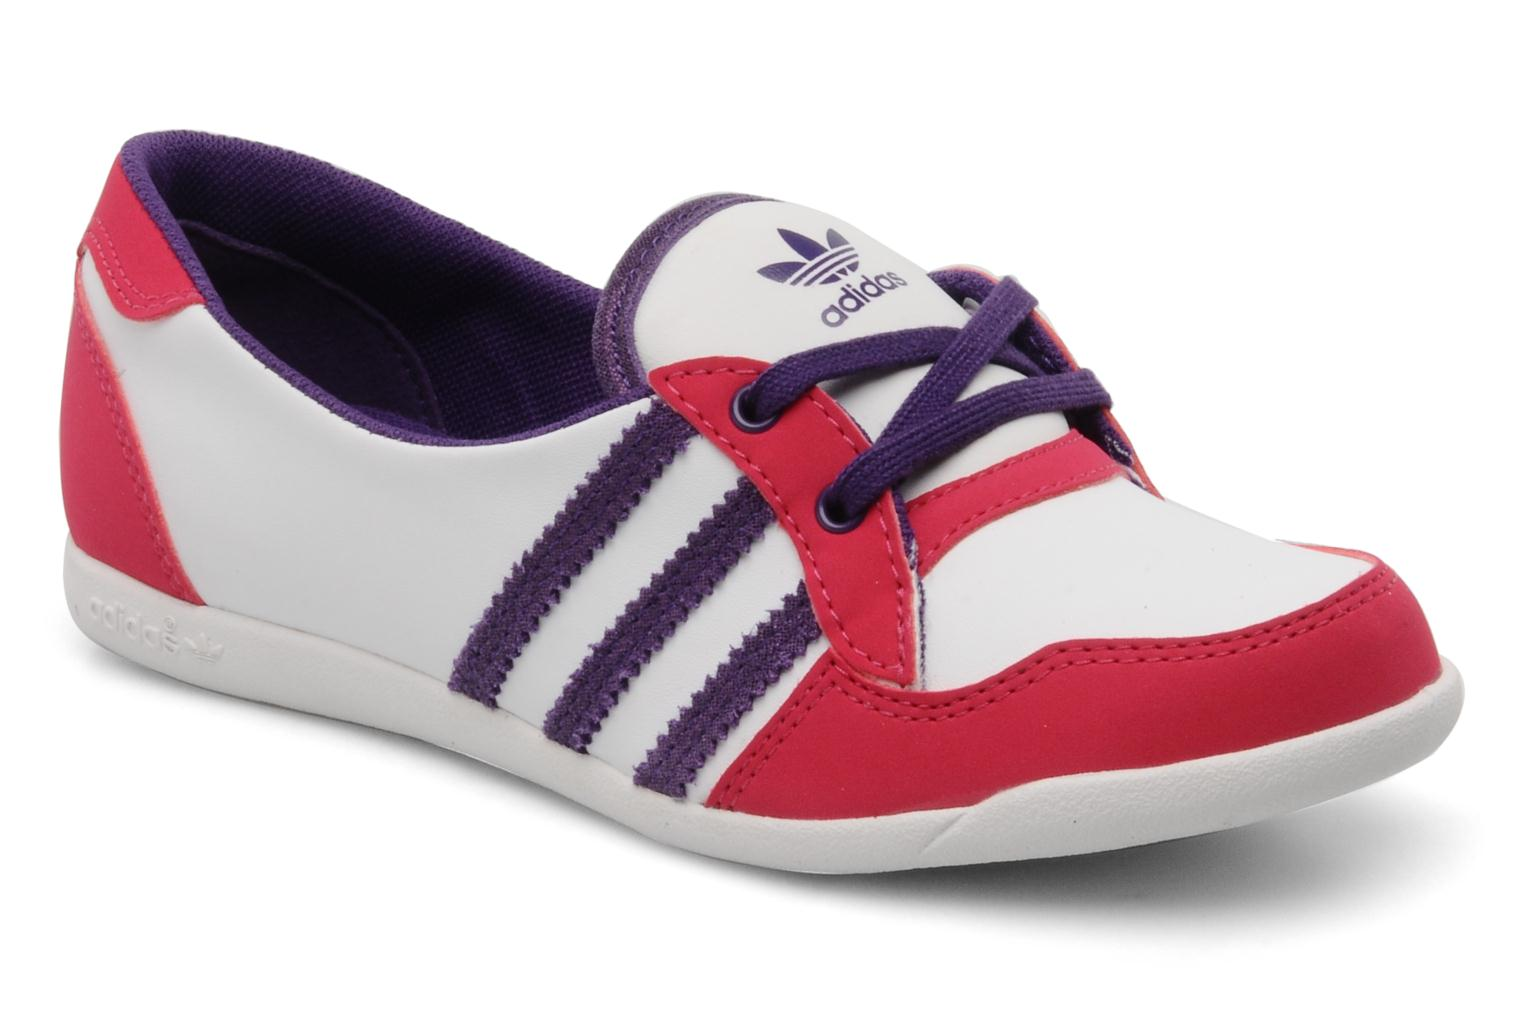 Forum slipper WHITE - POWER PURPLE S12 - BRIGHT PINK F12